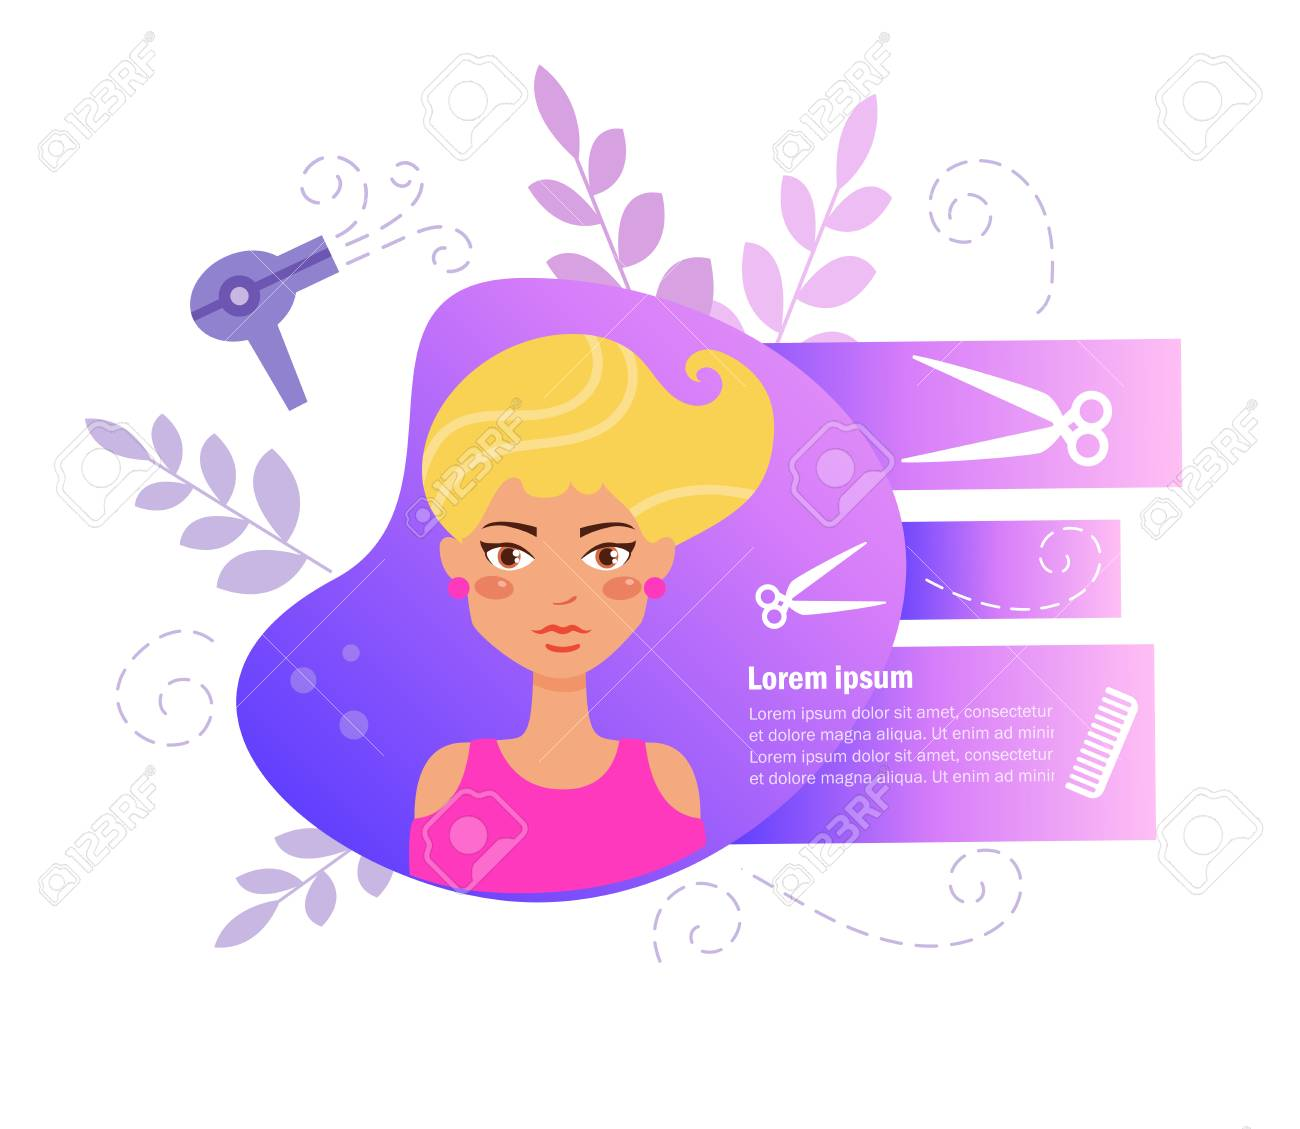 Hair Salon Vector Cartoon Isolated Art On White Background Royalty Free Cliparts Vectors And Stock Illustration Image 125089327